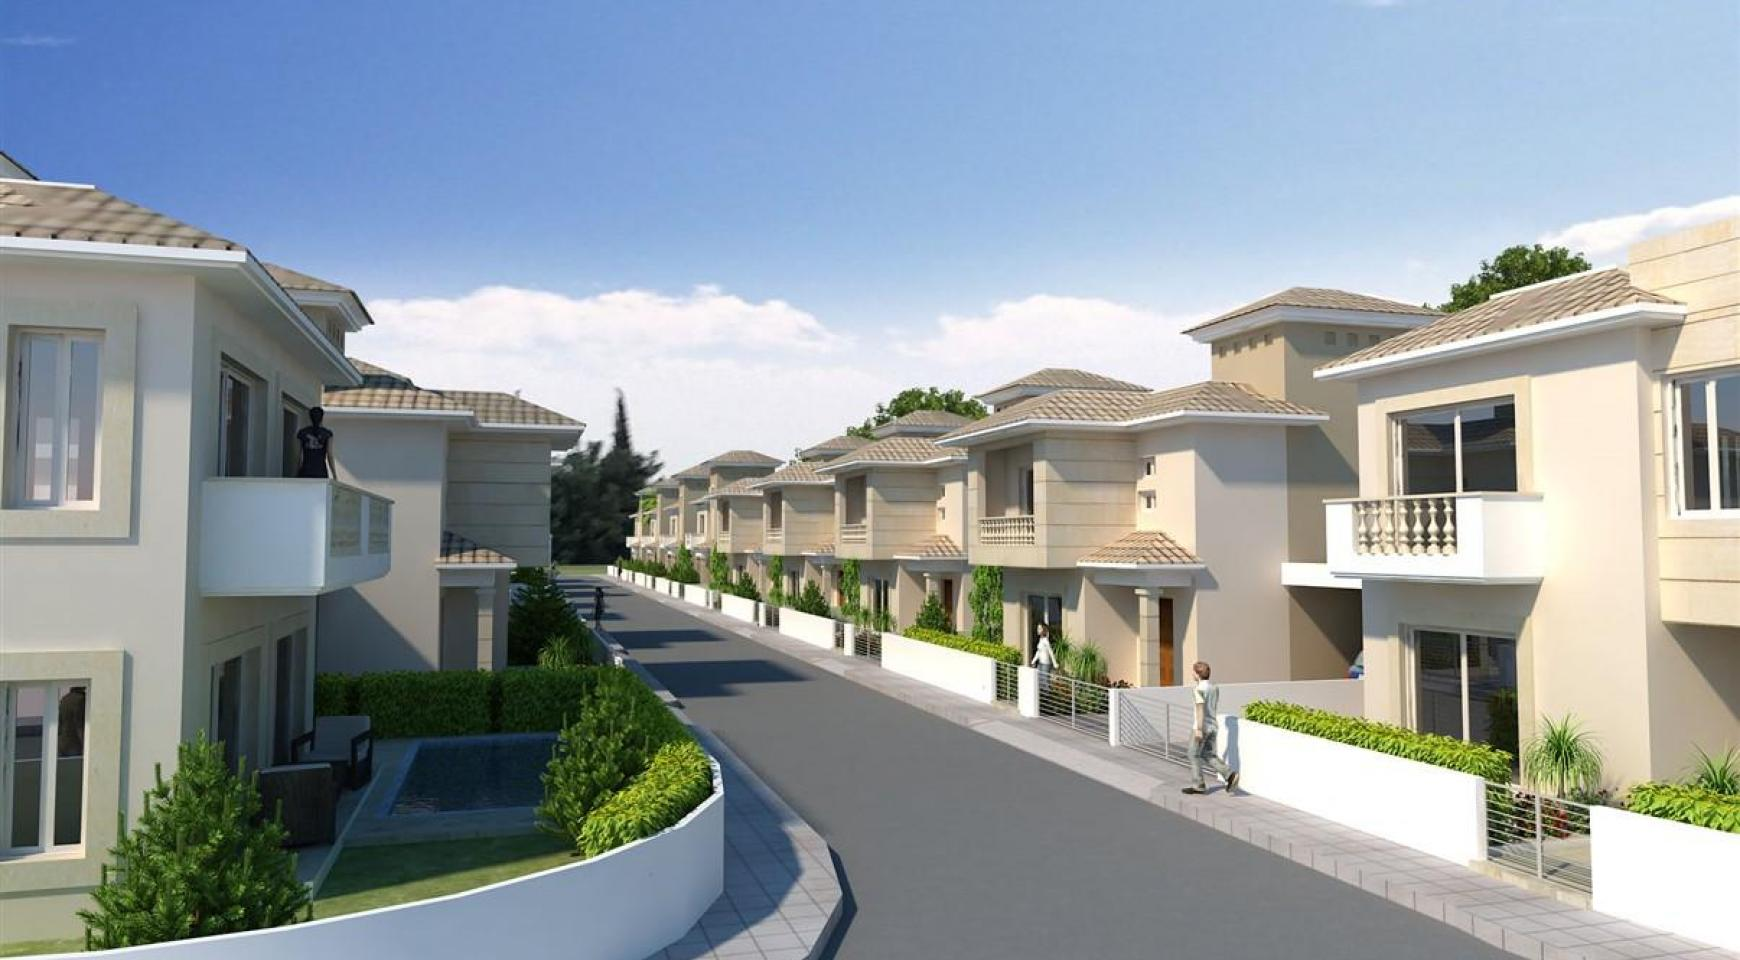 3 Bedroom Villa in a New Project - 7